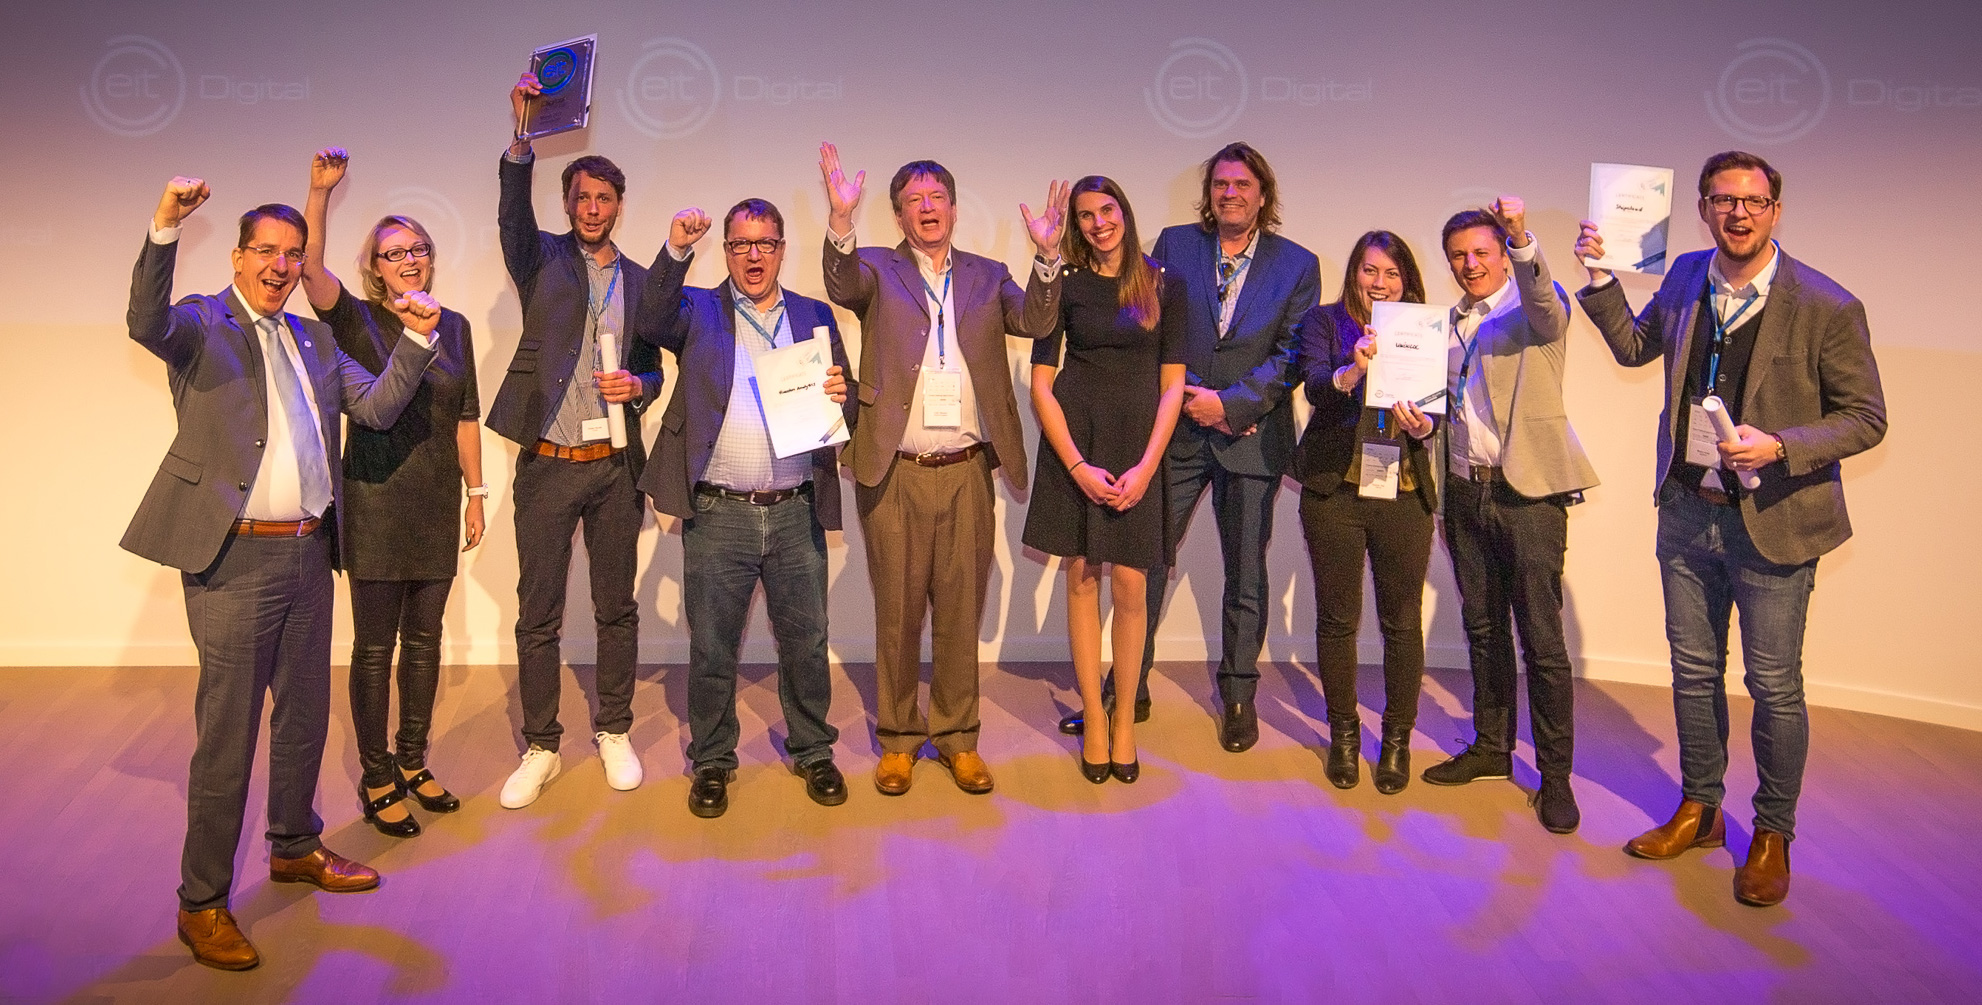 Finalists on stage at the EIT Digital Challenge final: ContactEngine, Houston Analytics, Shipcloud, trinckle 3D, Uwinloc